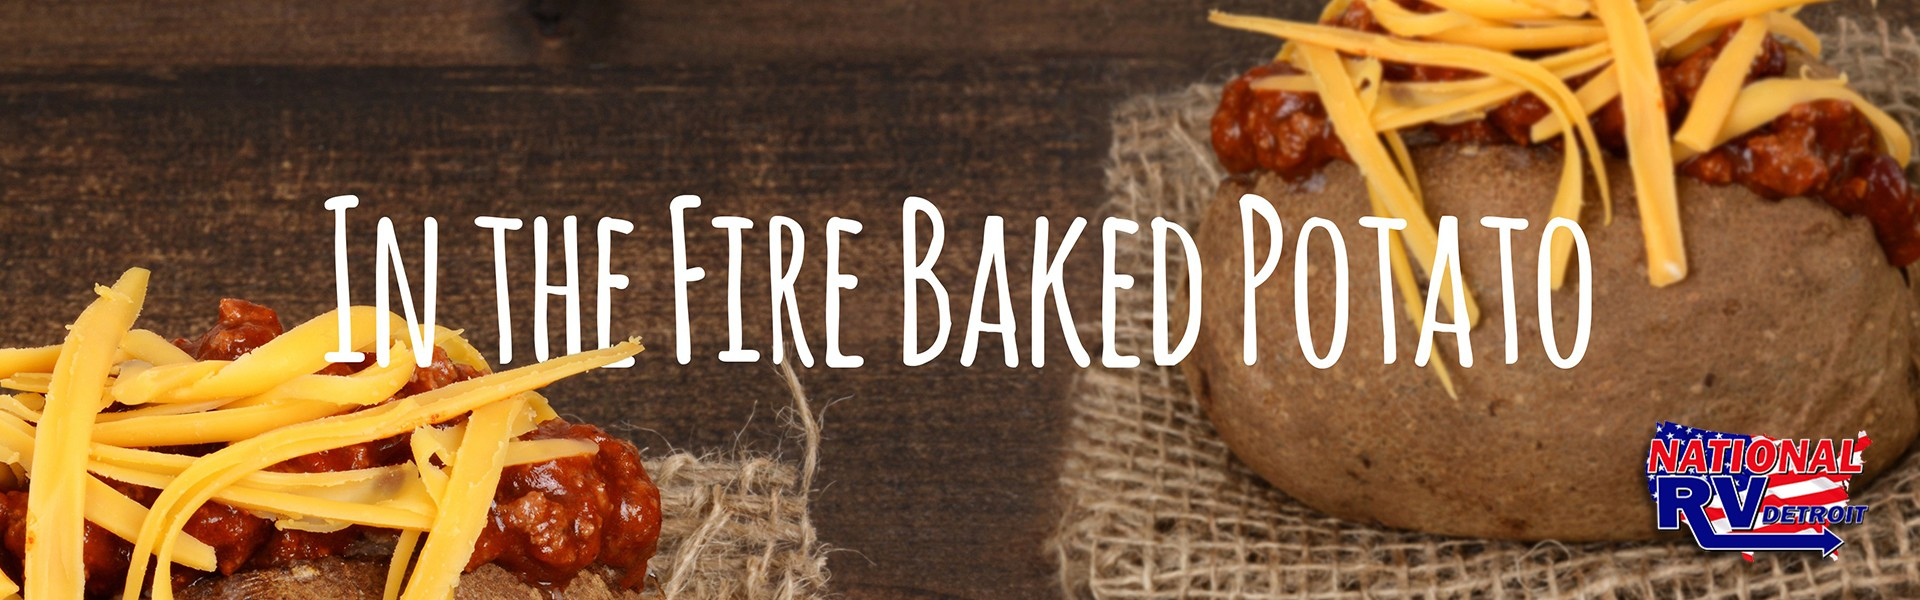 In the fire baked potato banner